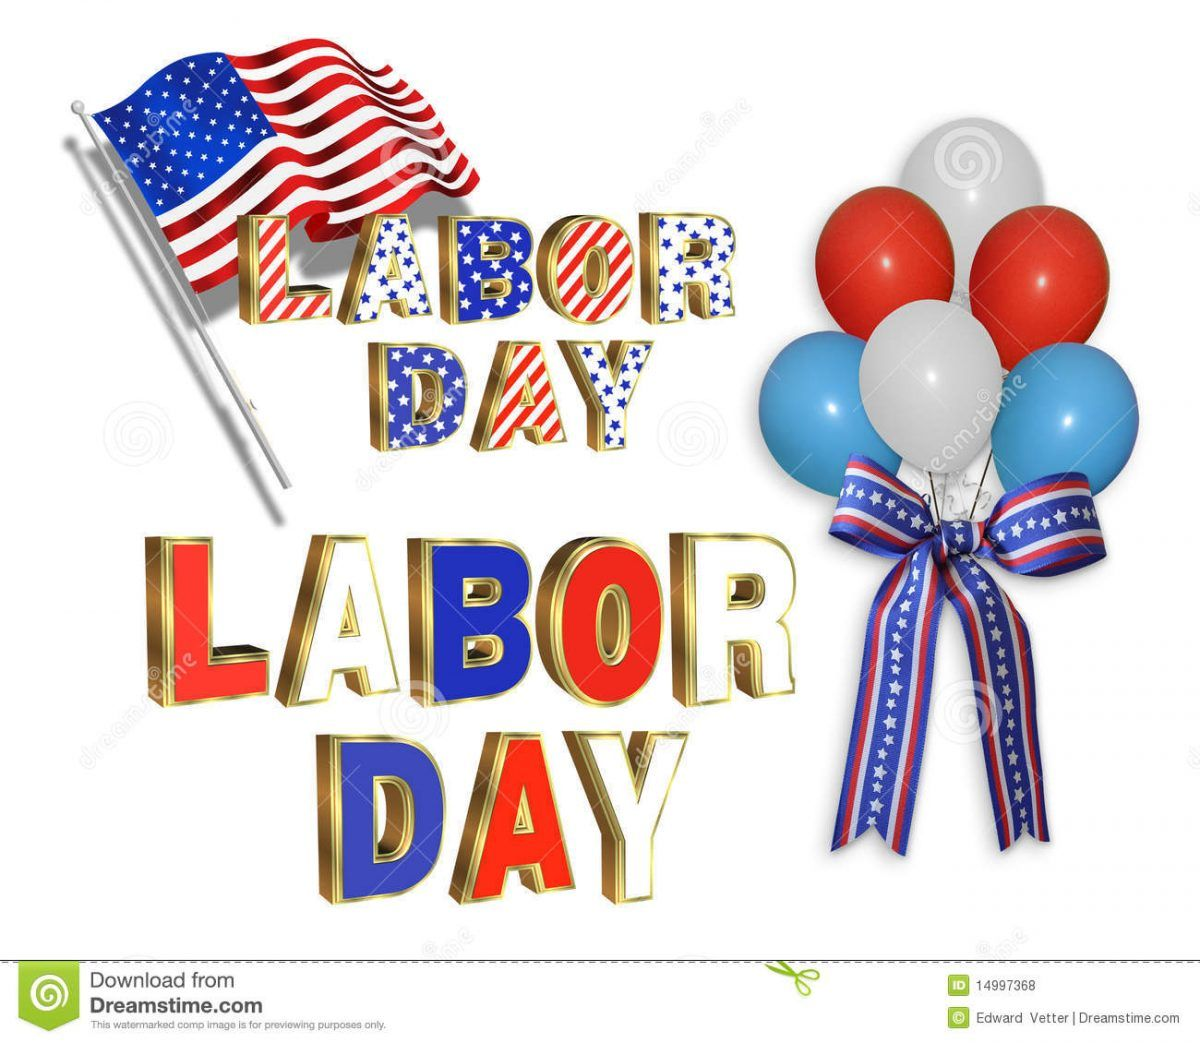 Labor Day Weekend Clipart Download.